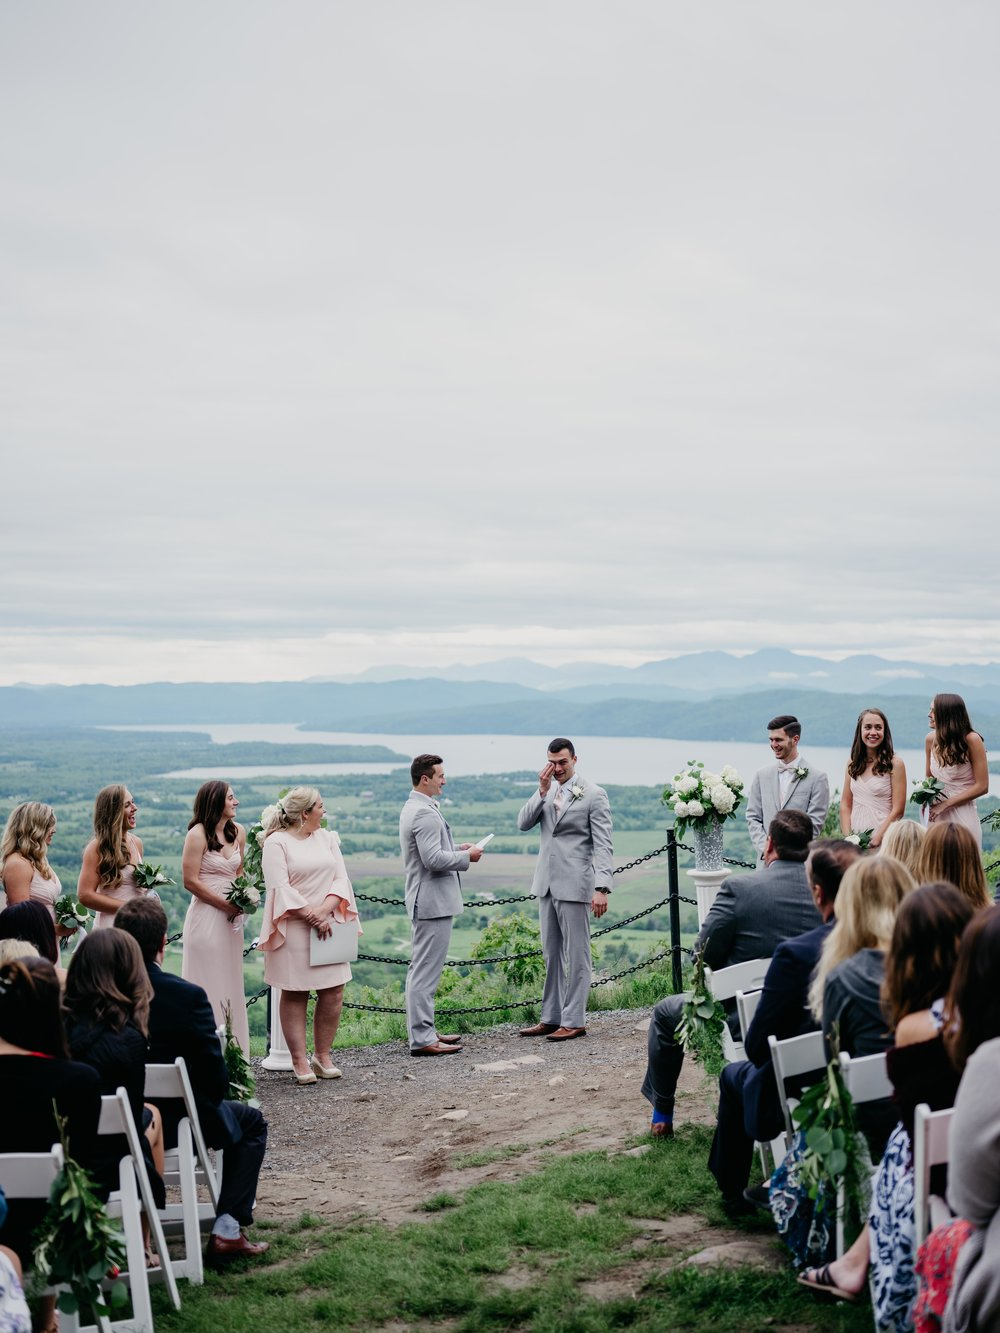 06032017-nick-evan-vermont-mountain-wedding-photographer-52.jpg